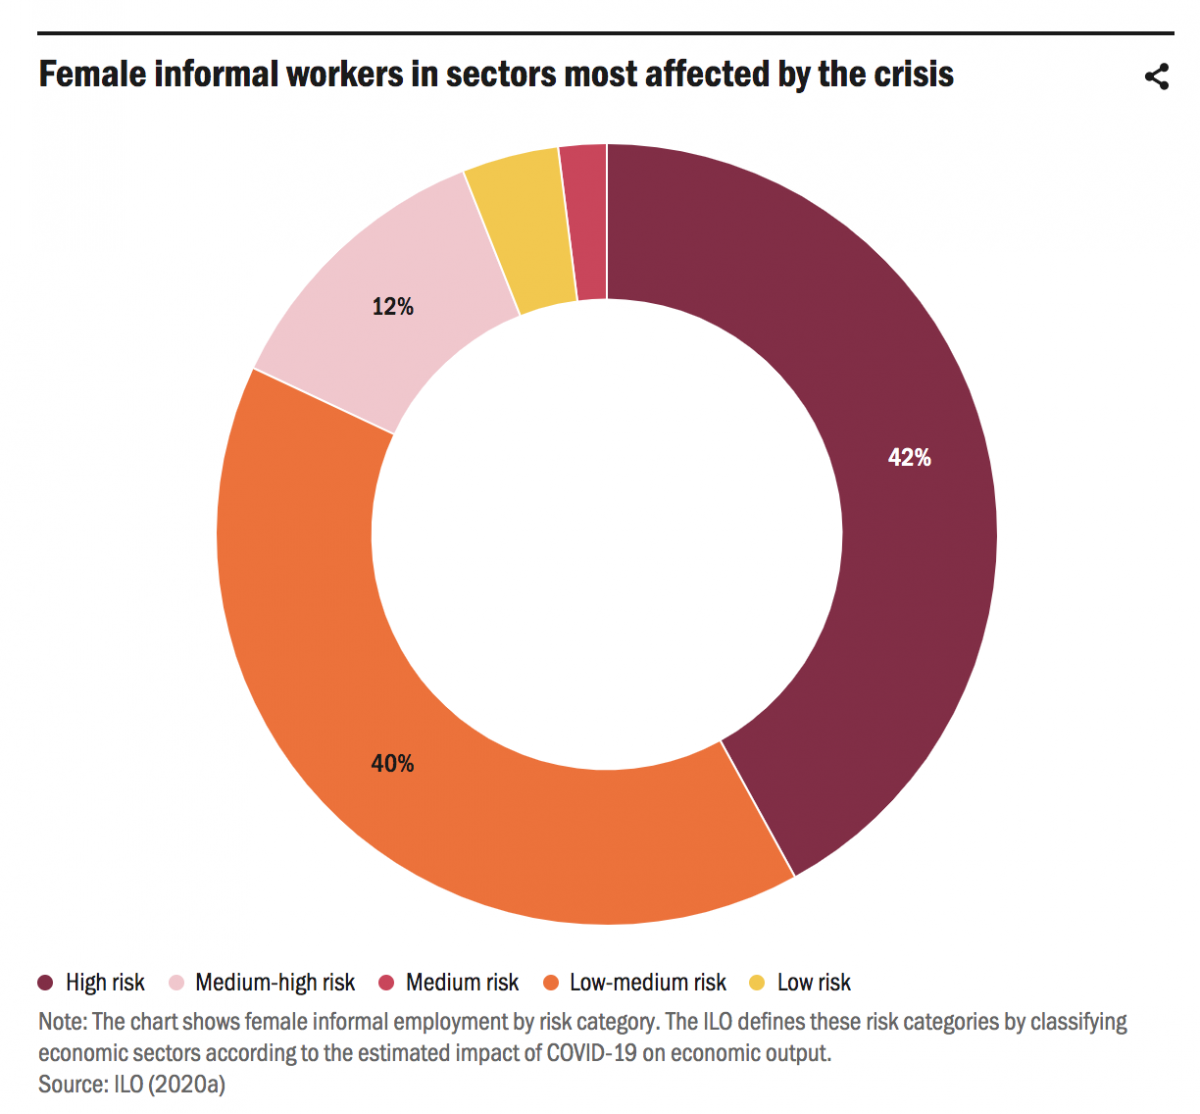 Female informal workers in sectors most affected by the crisis